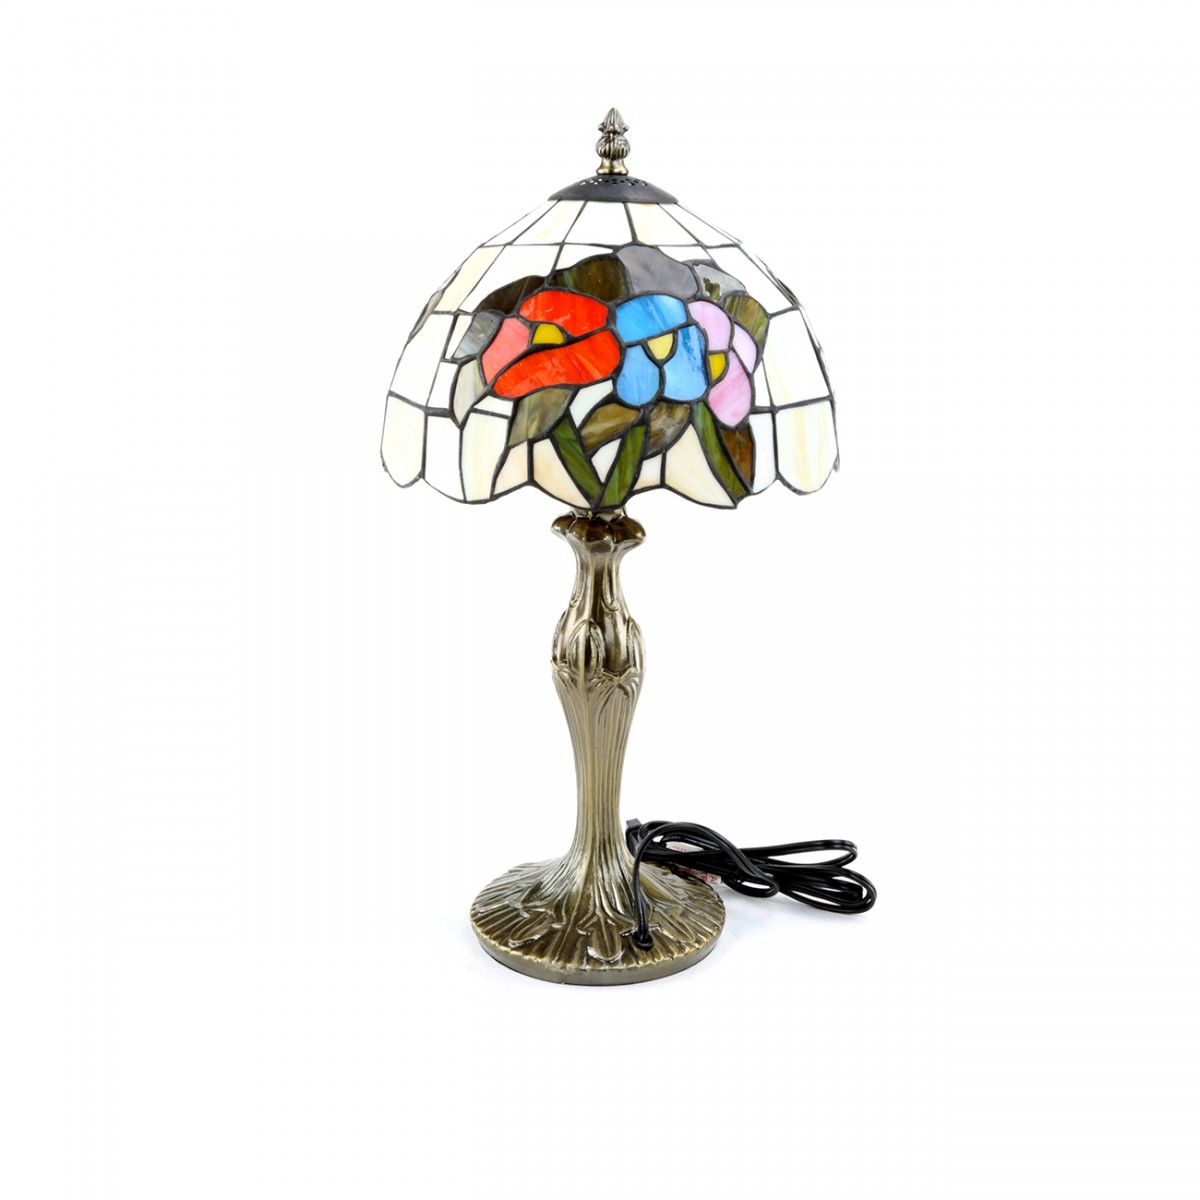 2 Table Lamp Antique Brass  Style Stained Glass 19H Lamp Table Lights Lamps